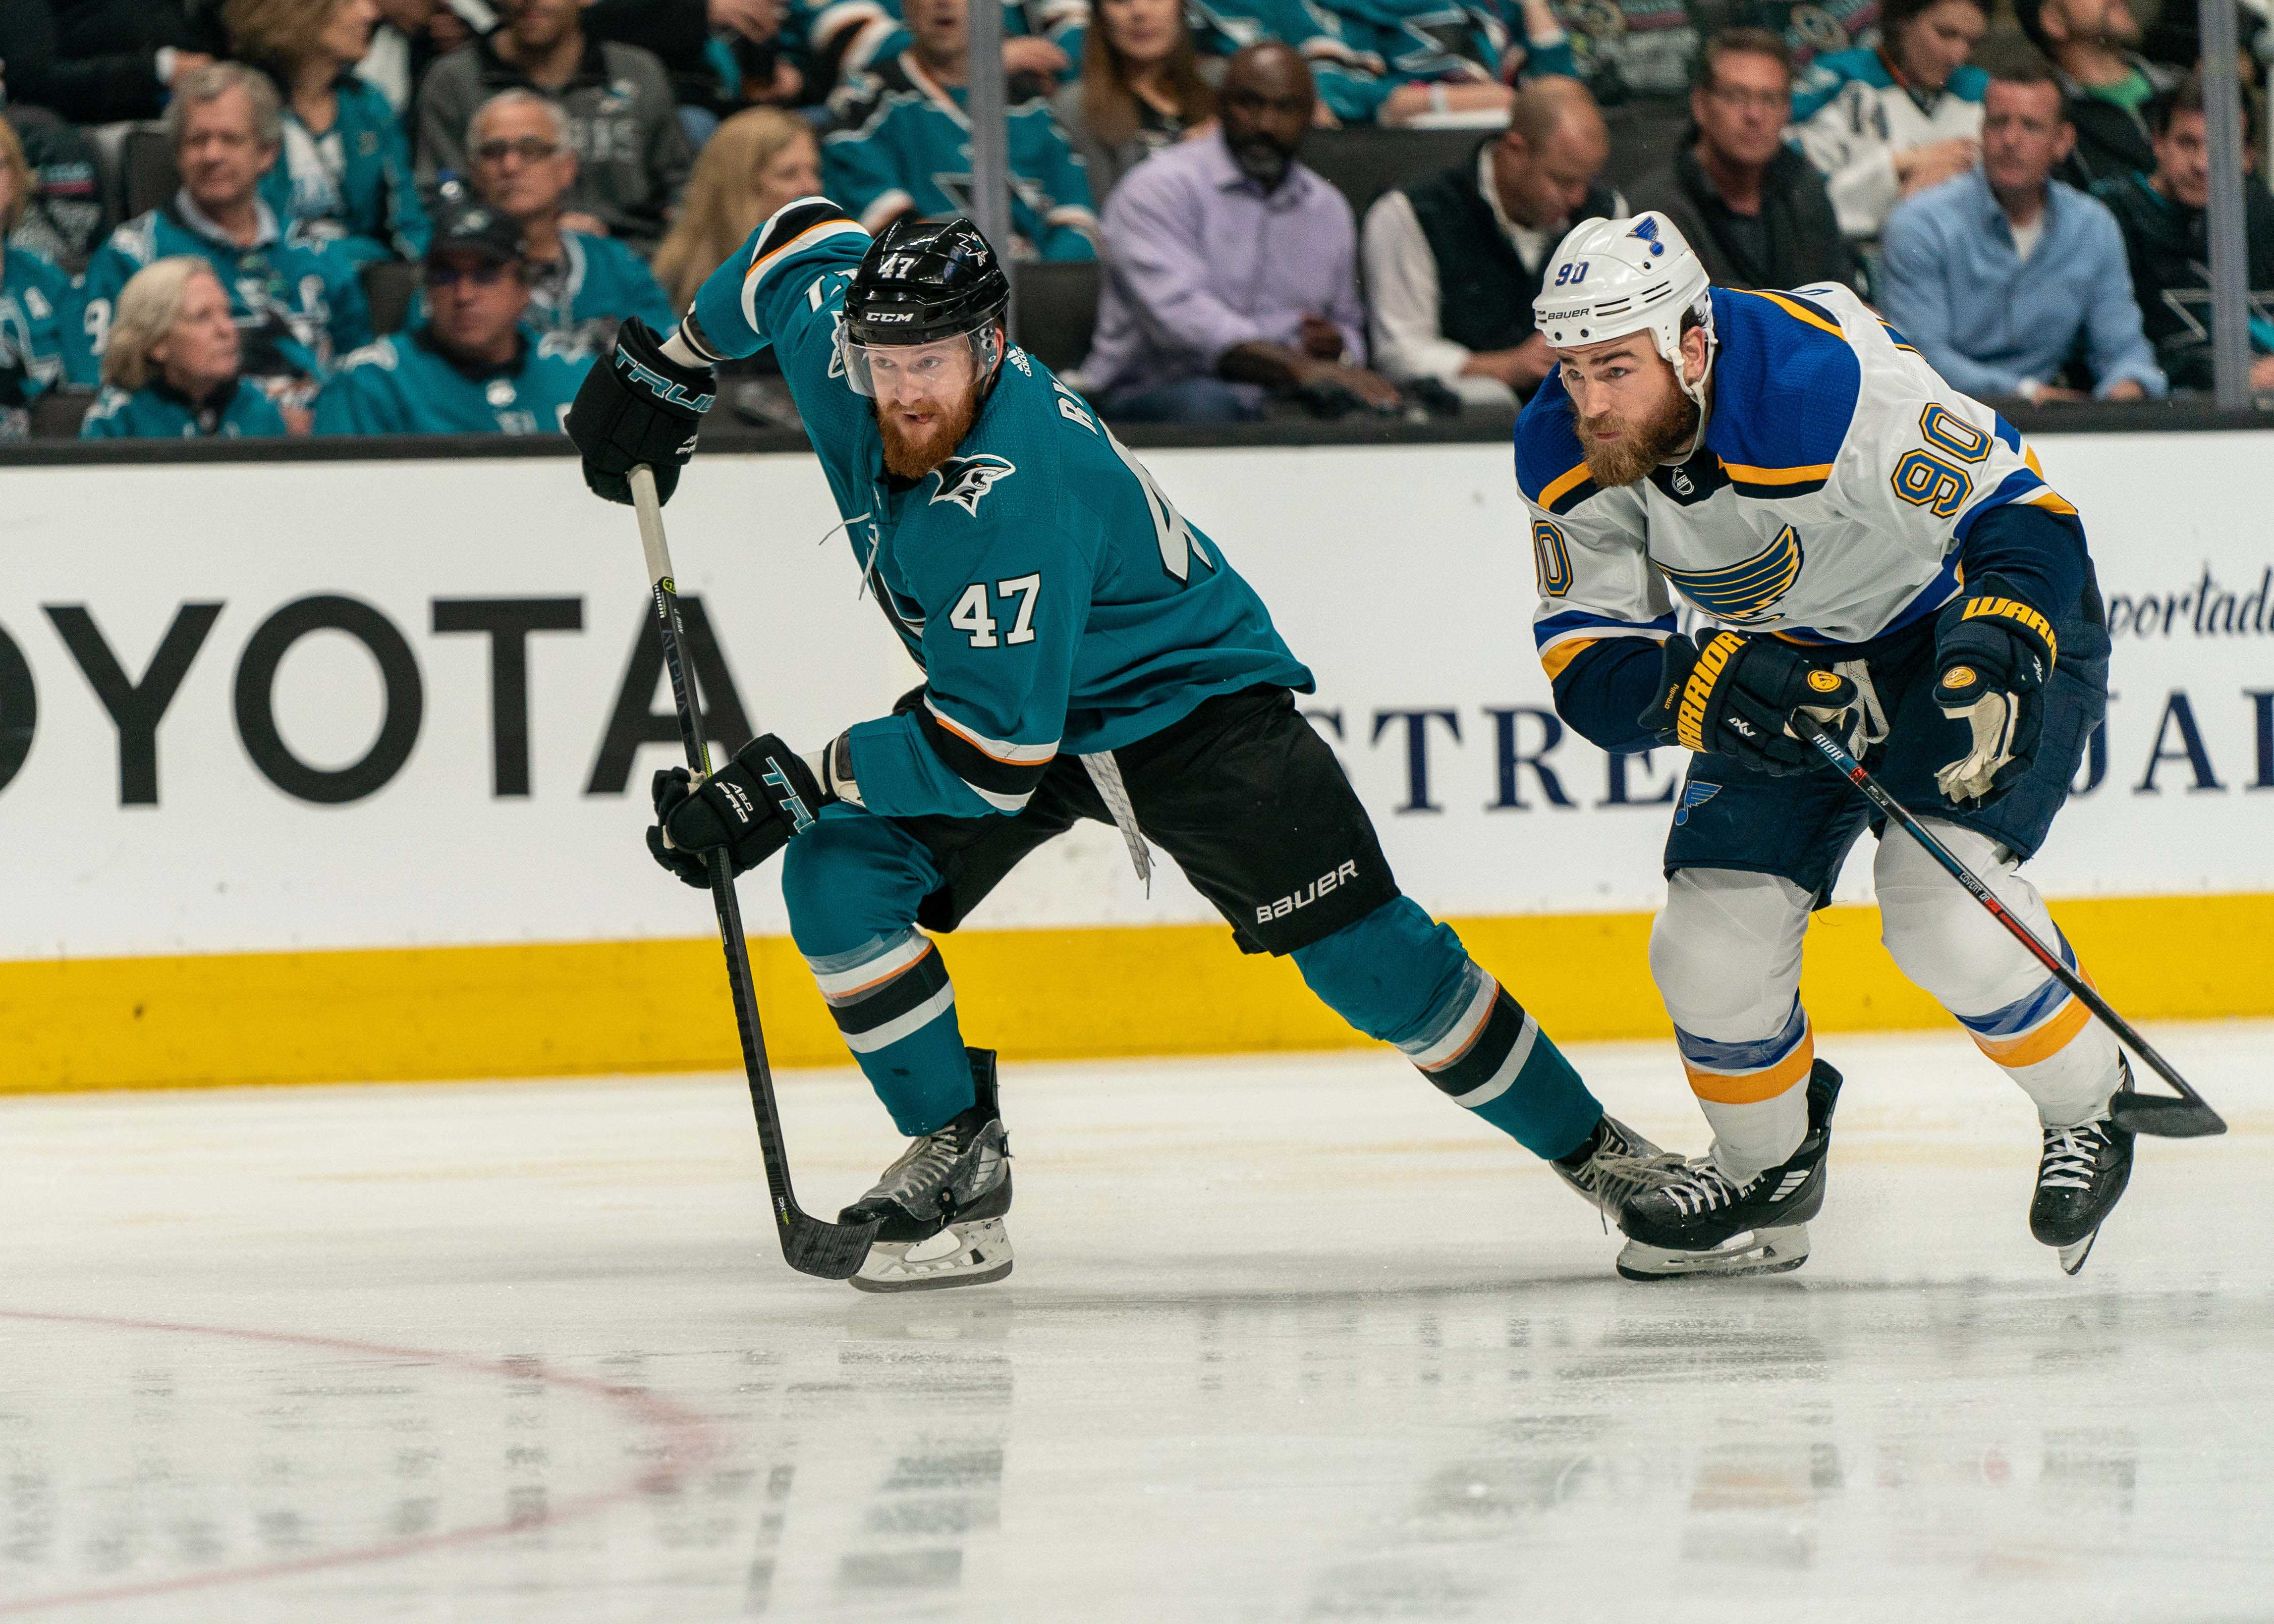 San Jose Sharks defenseman Joakim Ryan (47) and St. Louis Blues center Ryan O'Reilly (90) race for the puck during the second period in game two of the Western Conference Final of the 2019 Stanley Cup Playoffs at SAP Center at San Jose.